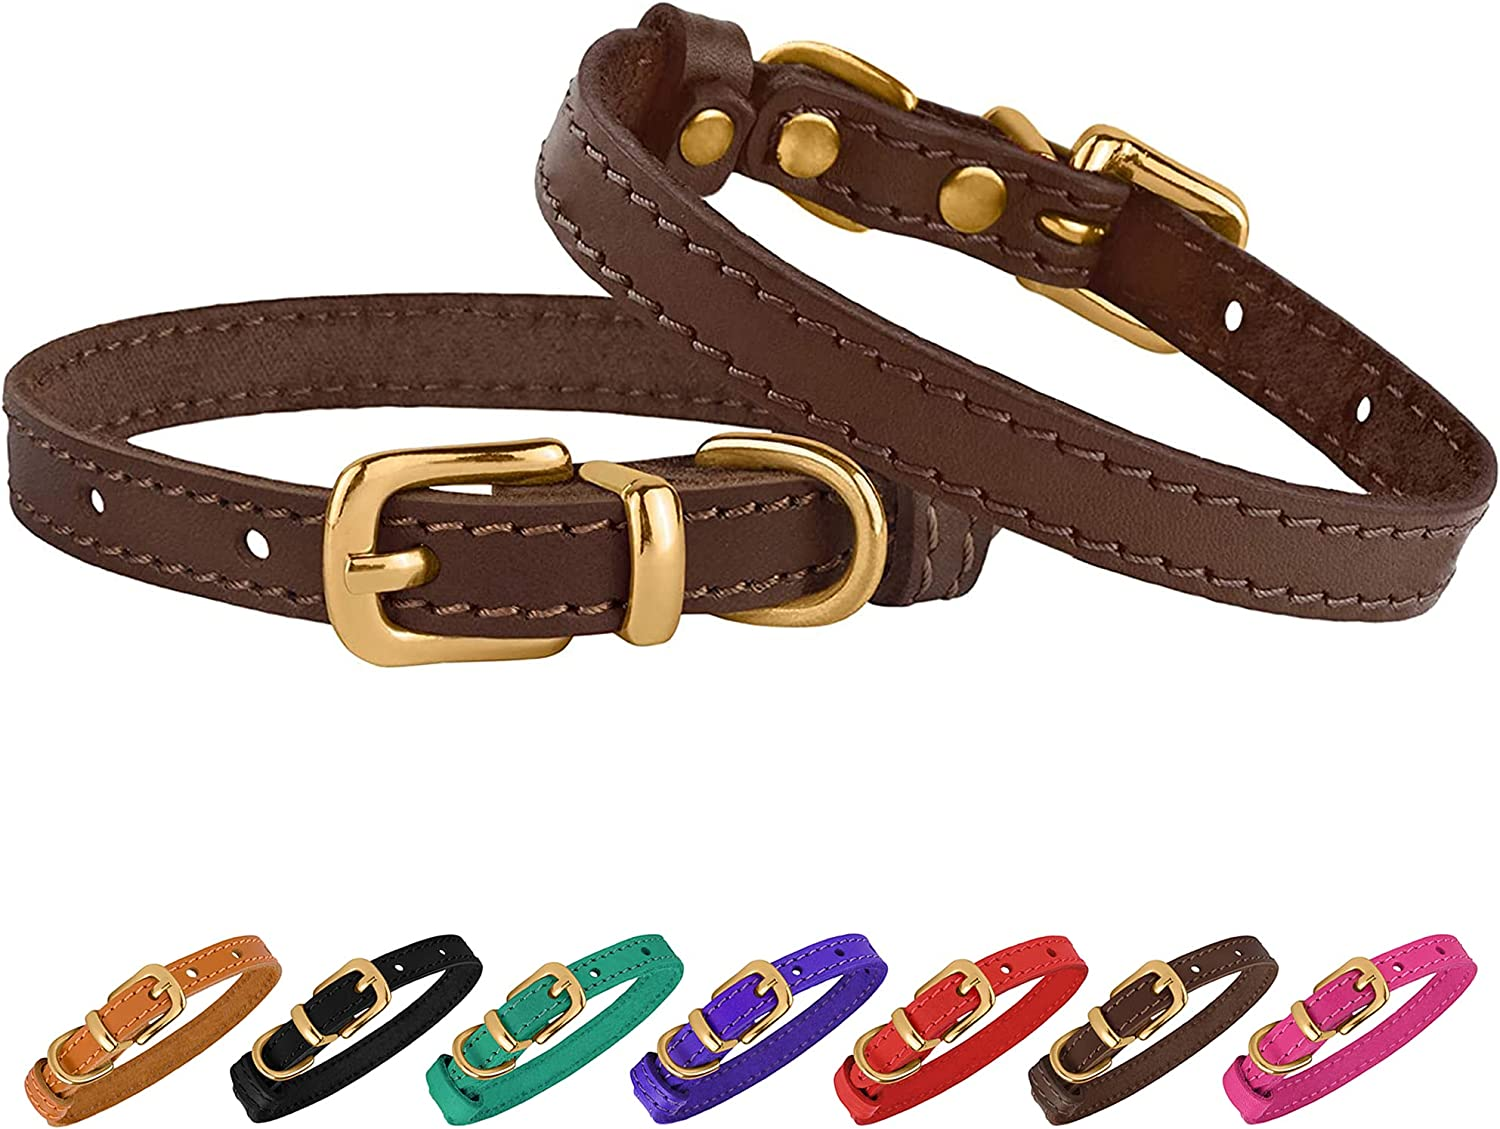 BRONZEDOG 55% OFF Leather Cat Collar with Small Pet Buckle Adjustable Superlatite Co